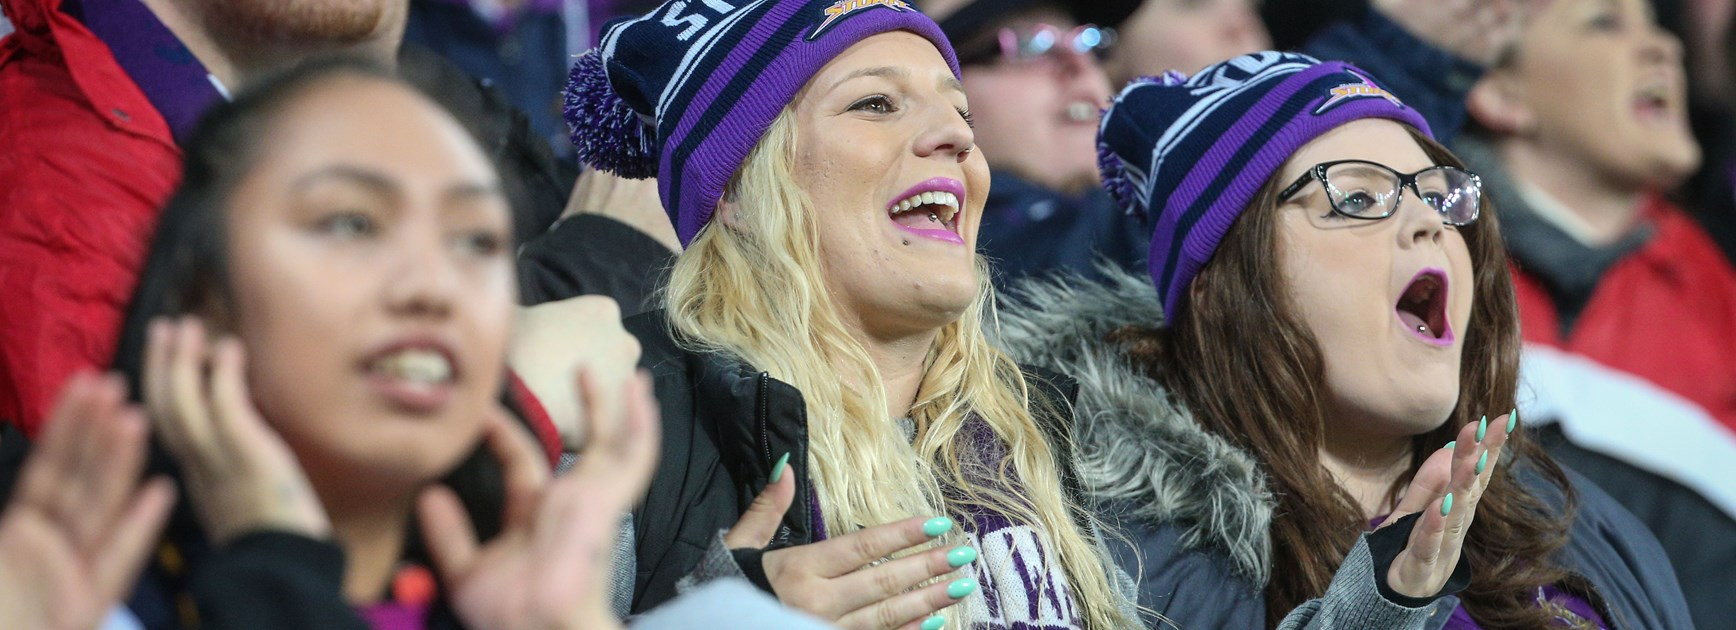 Join the Storm supporter bay in Perth!